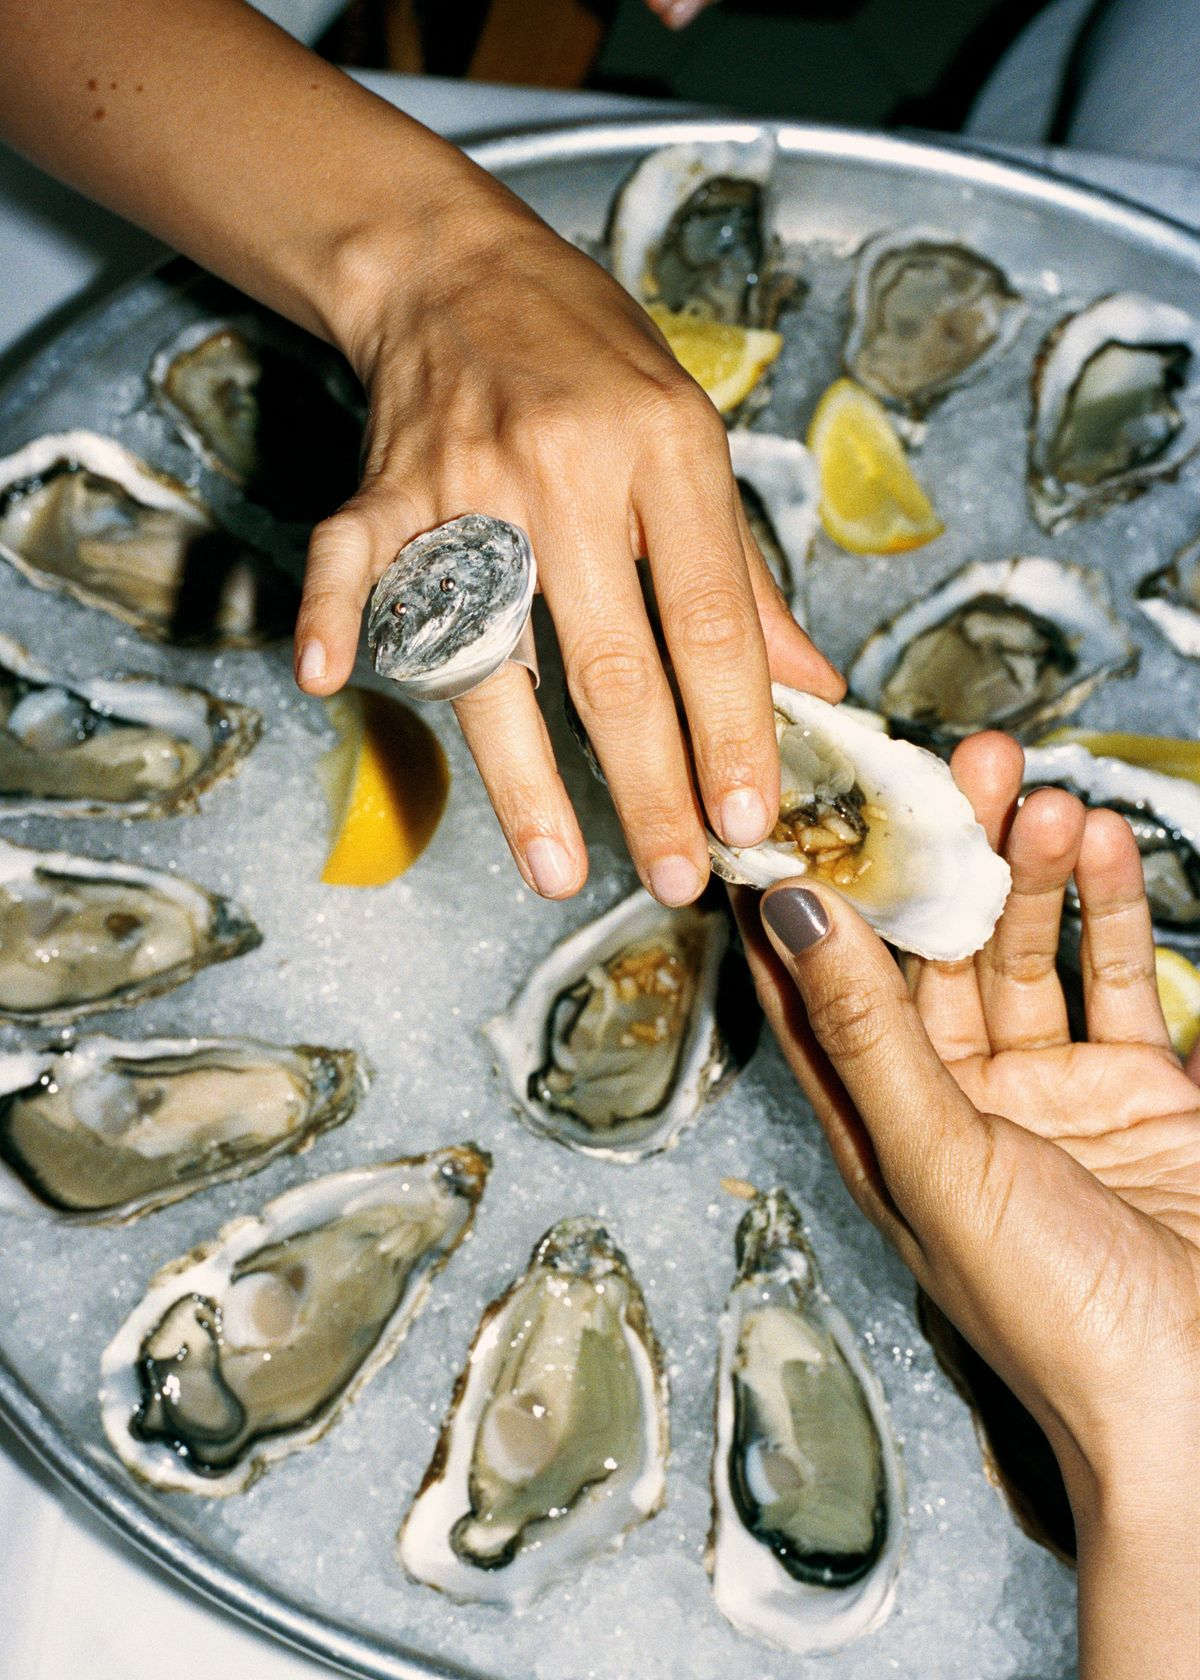 This Swedish Designer Turns Oysters Into Jewelry